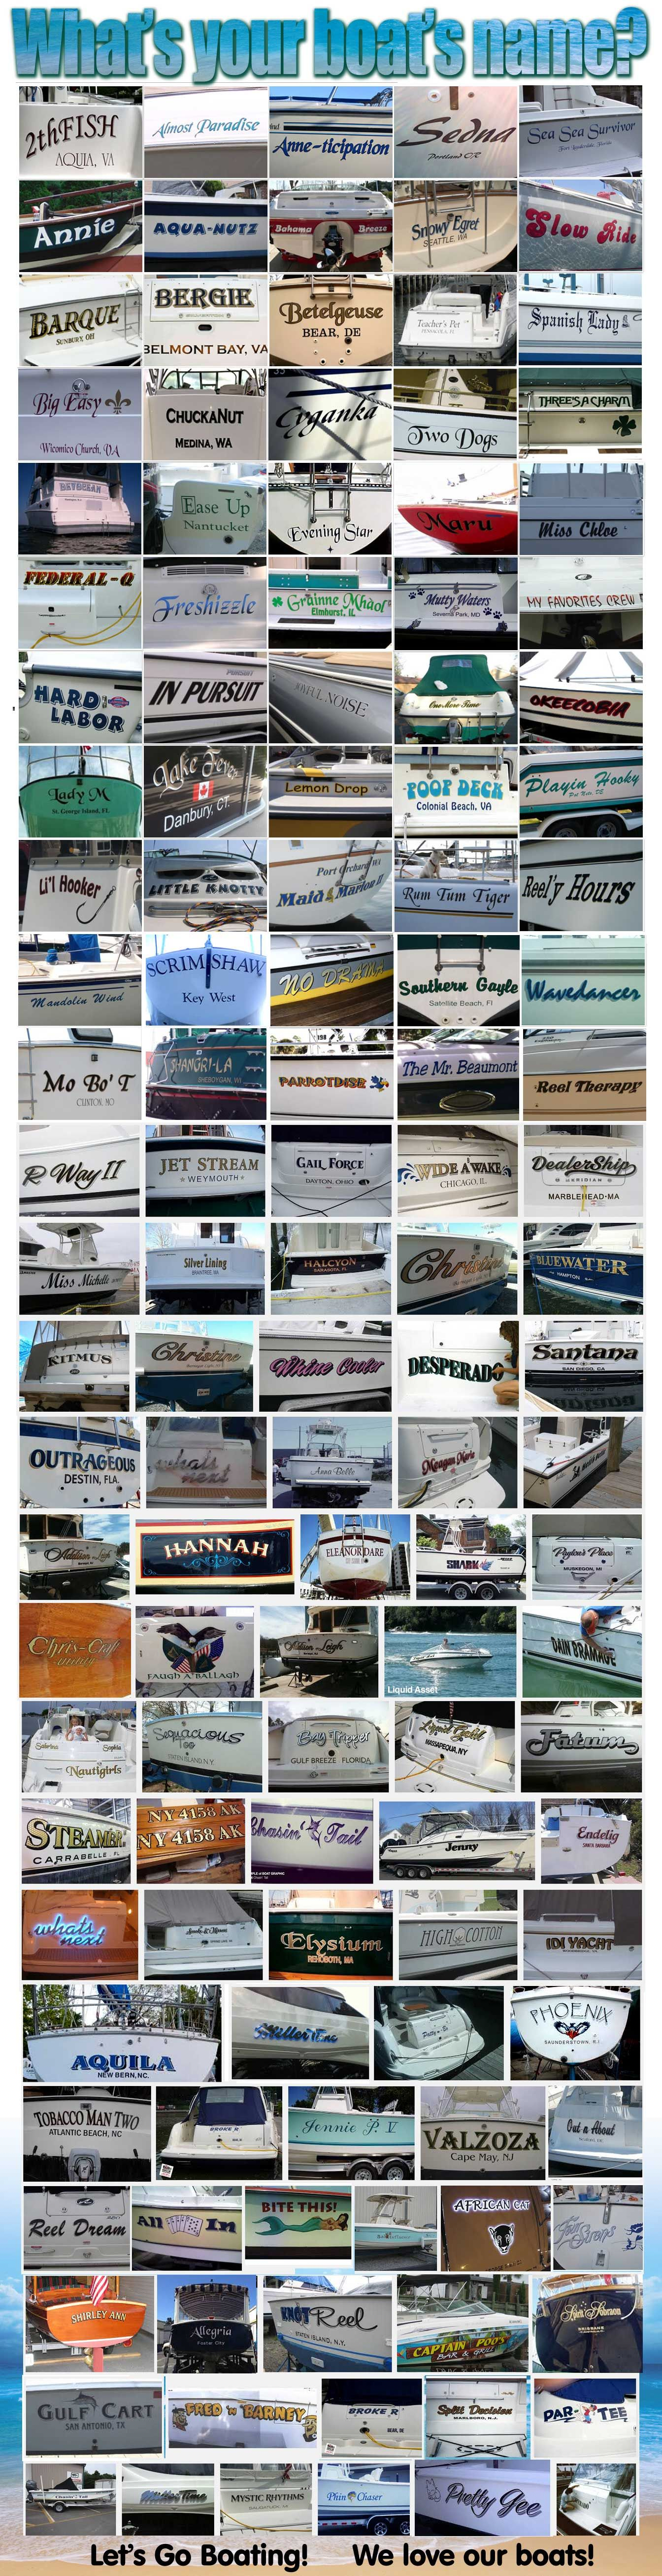 Boat Names We Love Our Boats And Seeing All The Creative Styles Lettering Boatnames